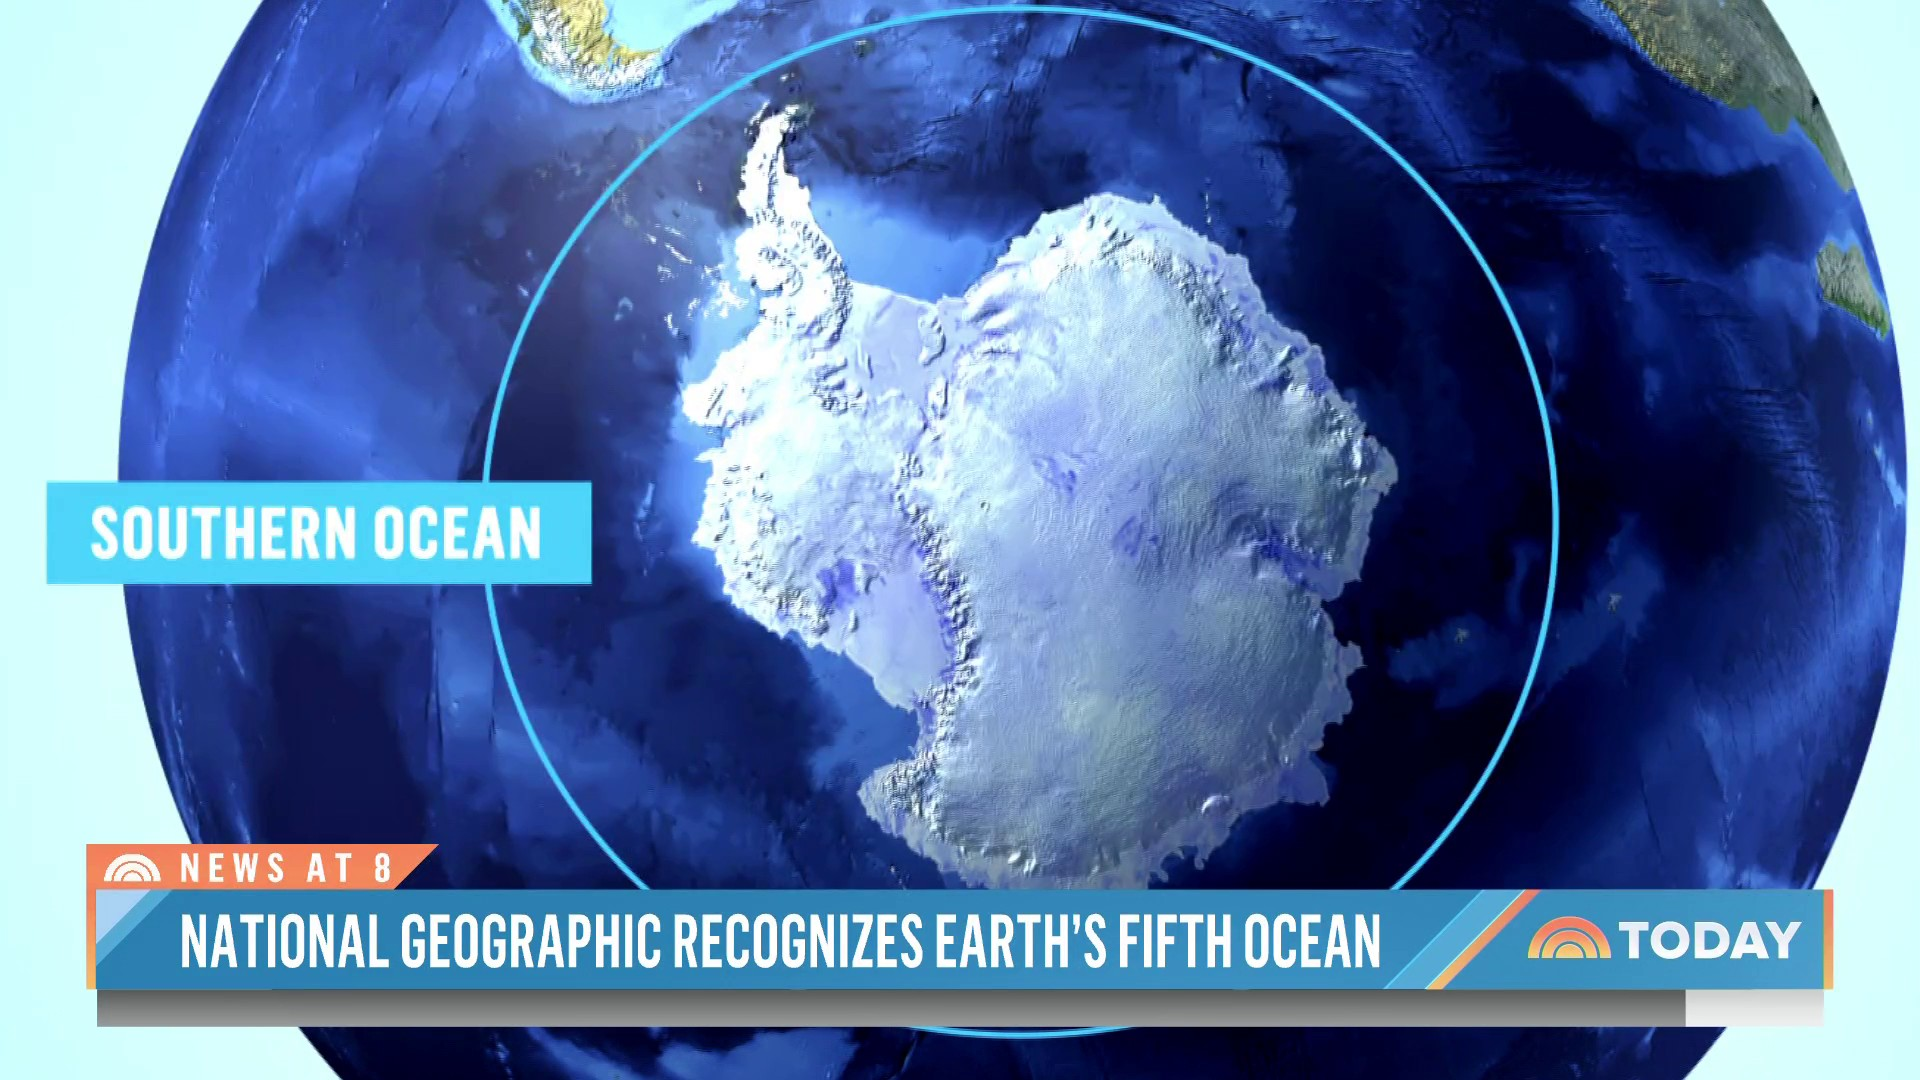 A fifth ocean? National Geographic adds Southern Ocean to world map Photo